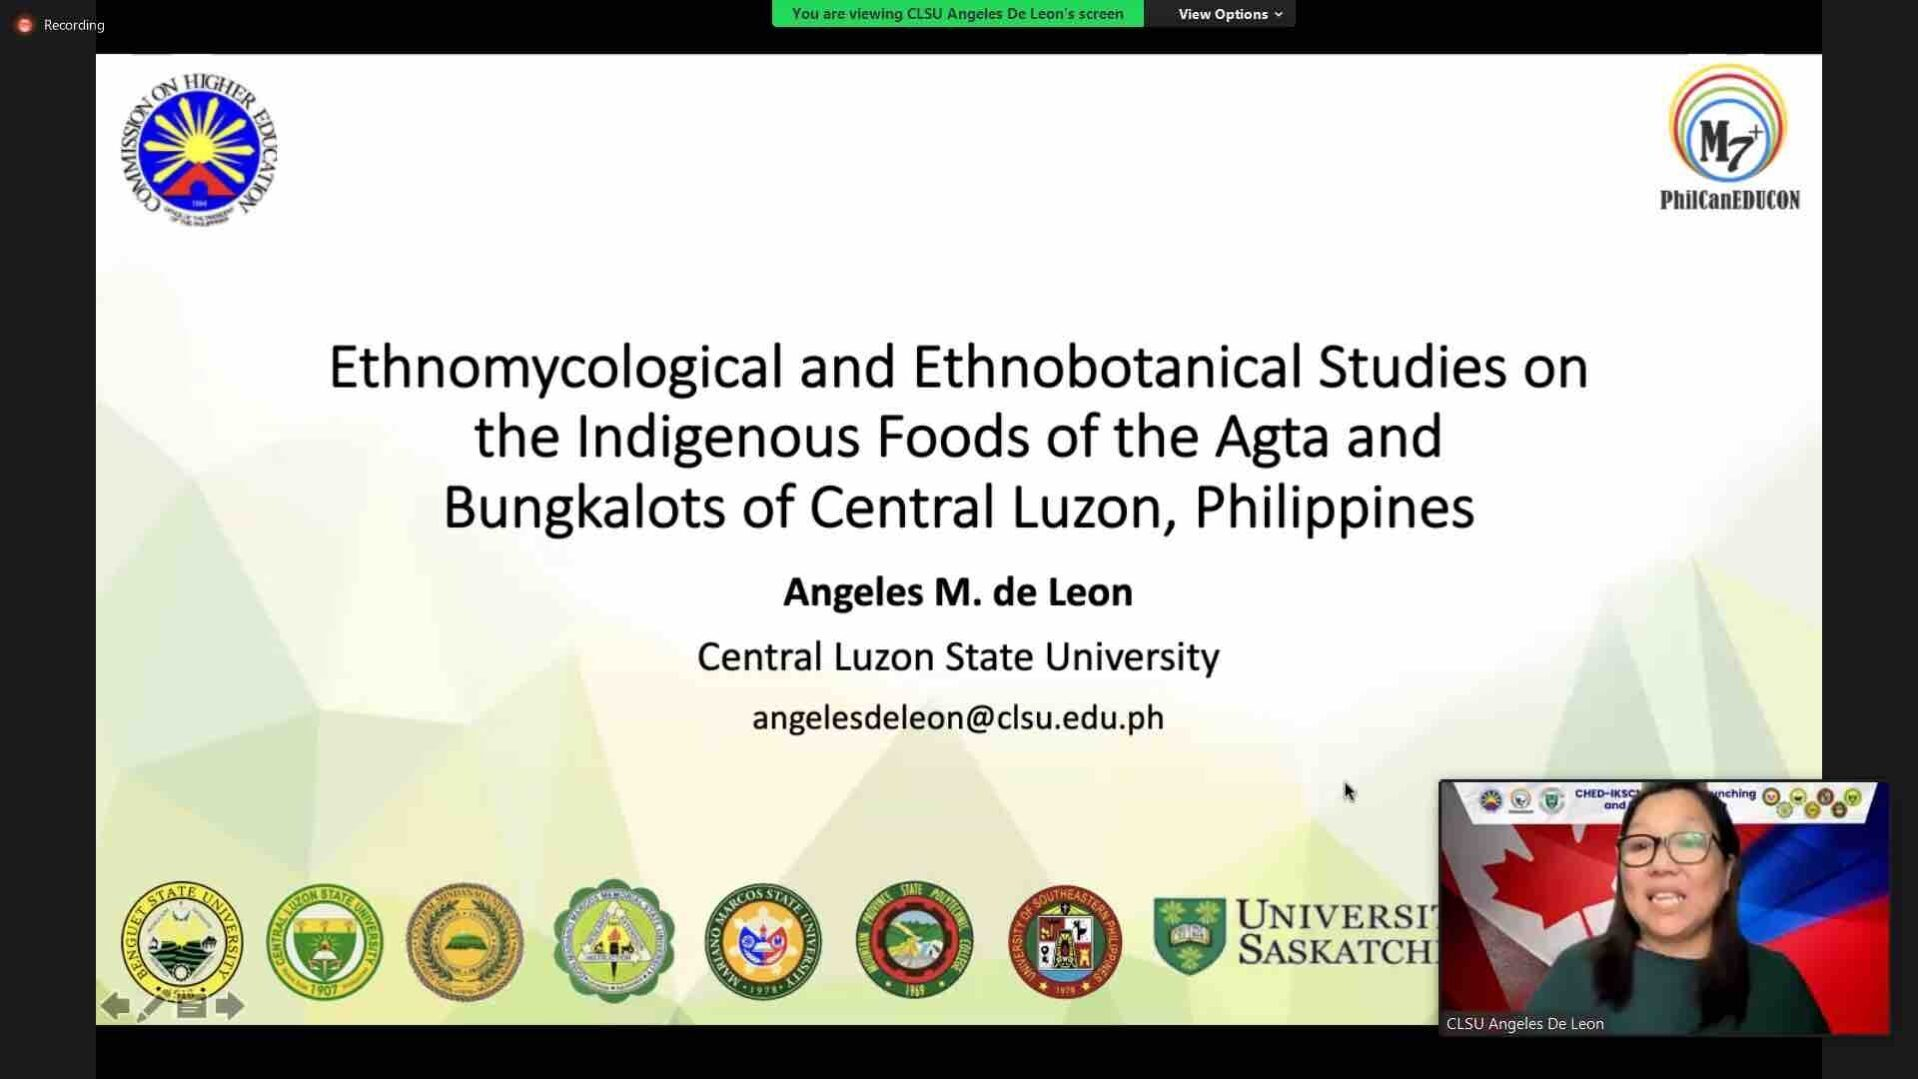 CLSU joins collab on sustaining indigenous knowledge